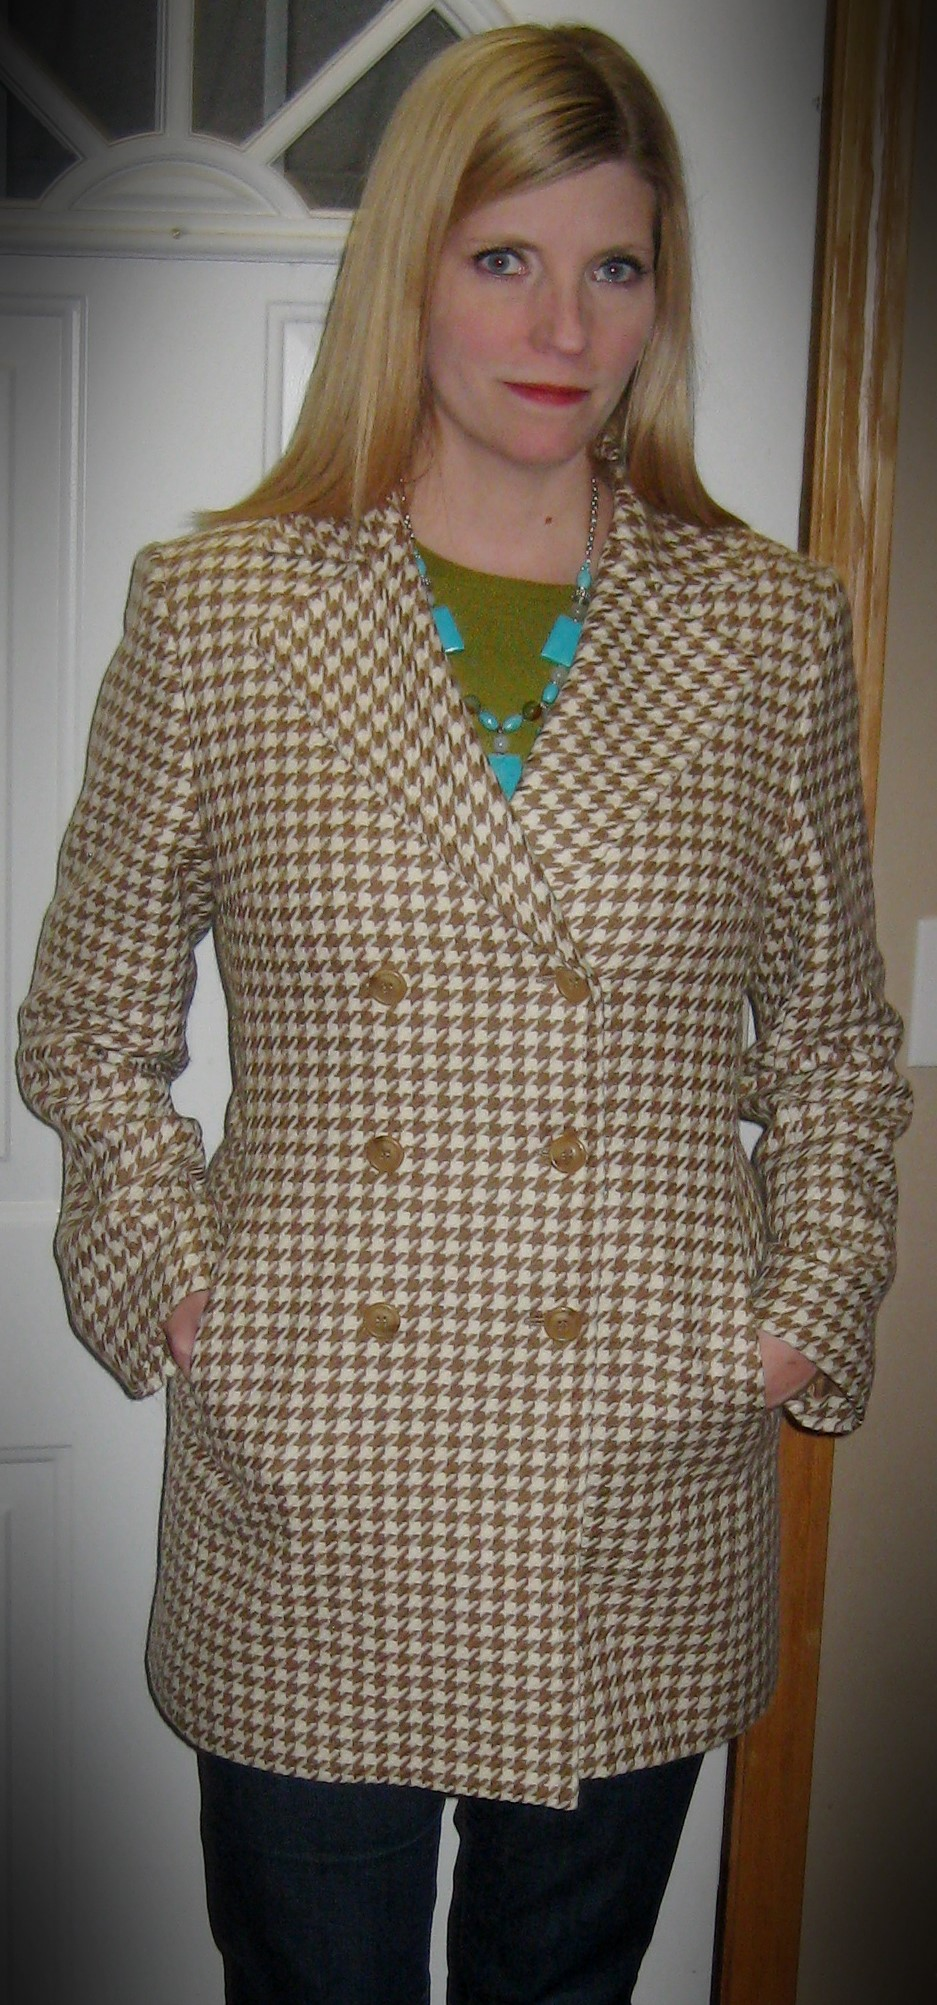 Jax wool coat for $10